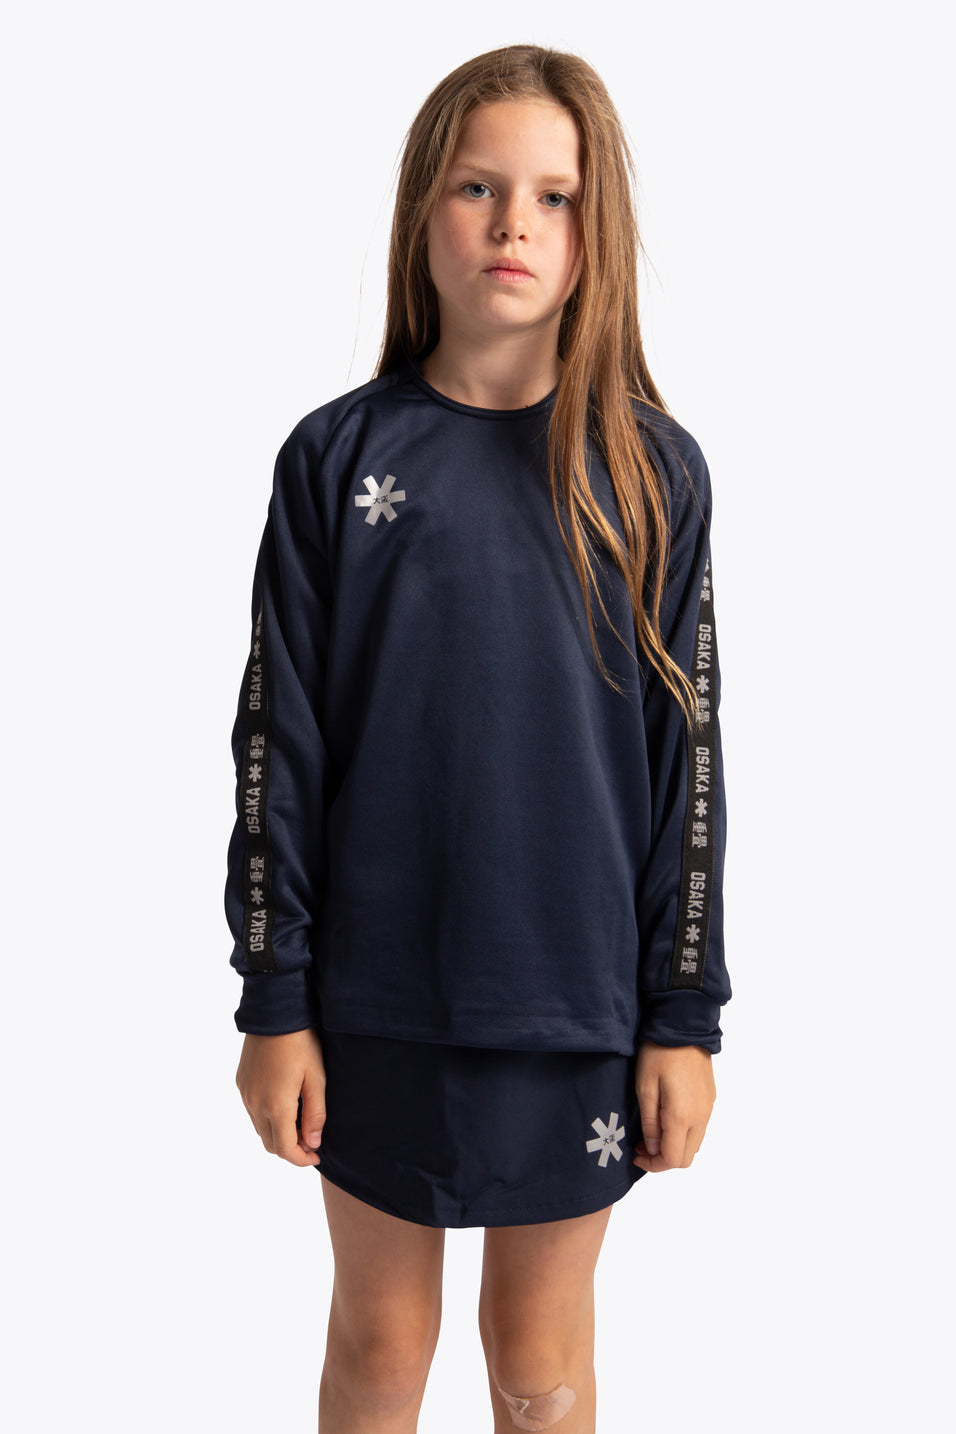 Osaka kids sweater navy